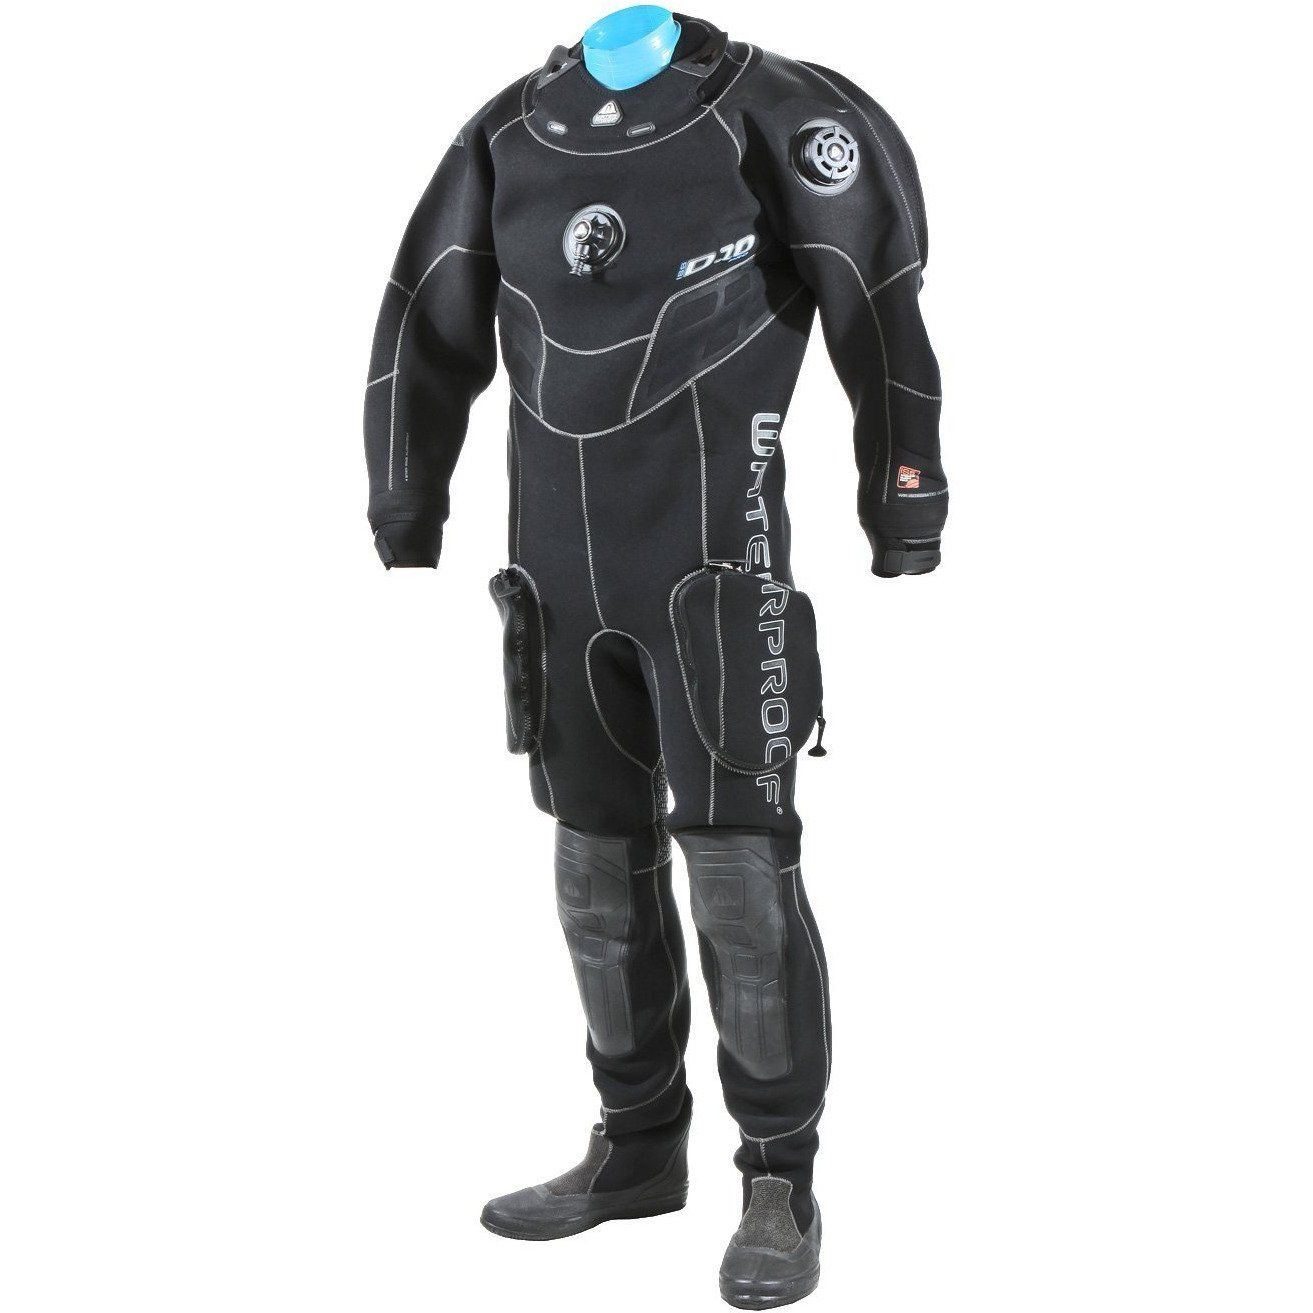 D10 Pro ISS Mens Drysuit Waterproof